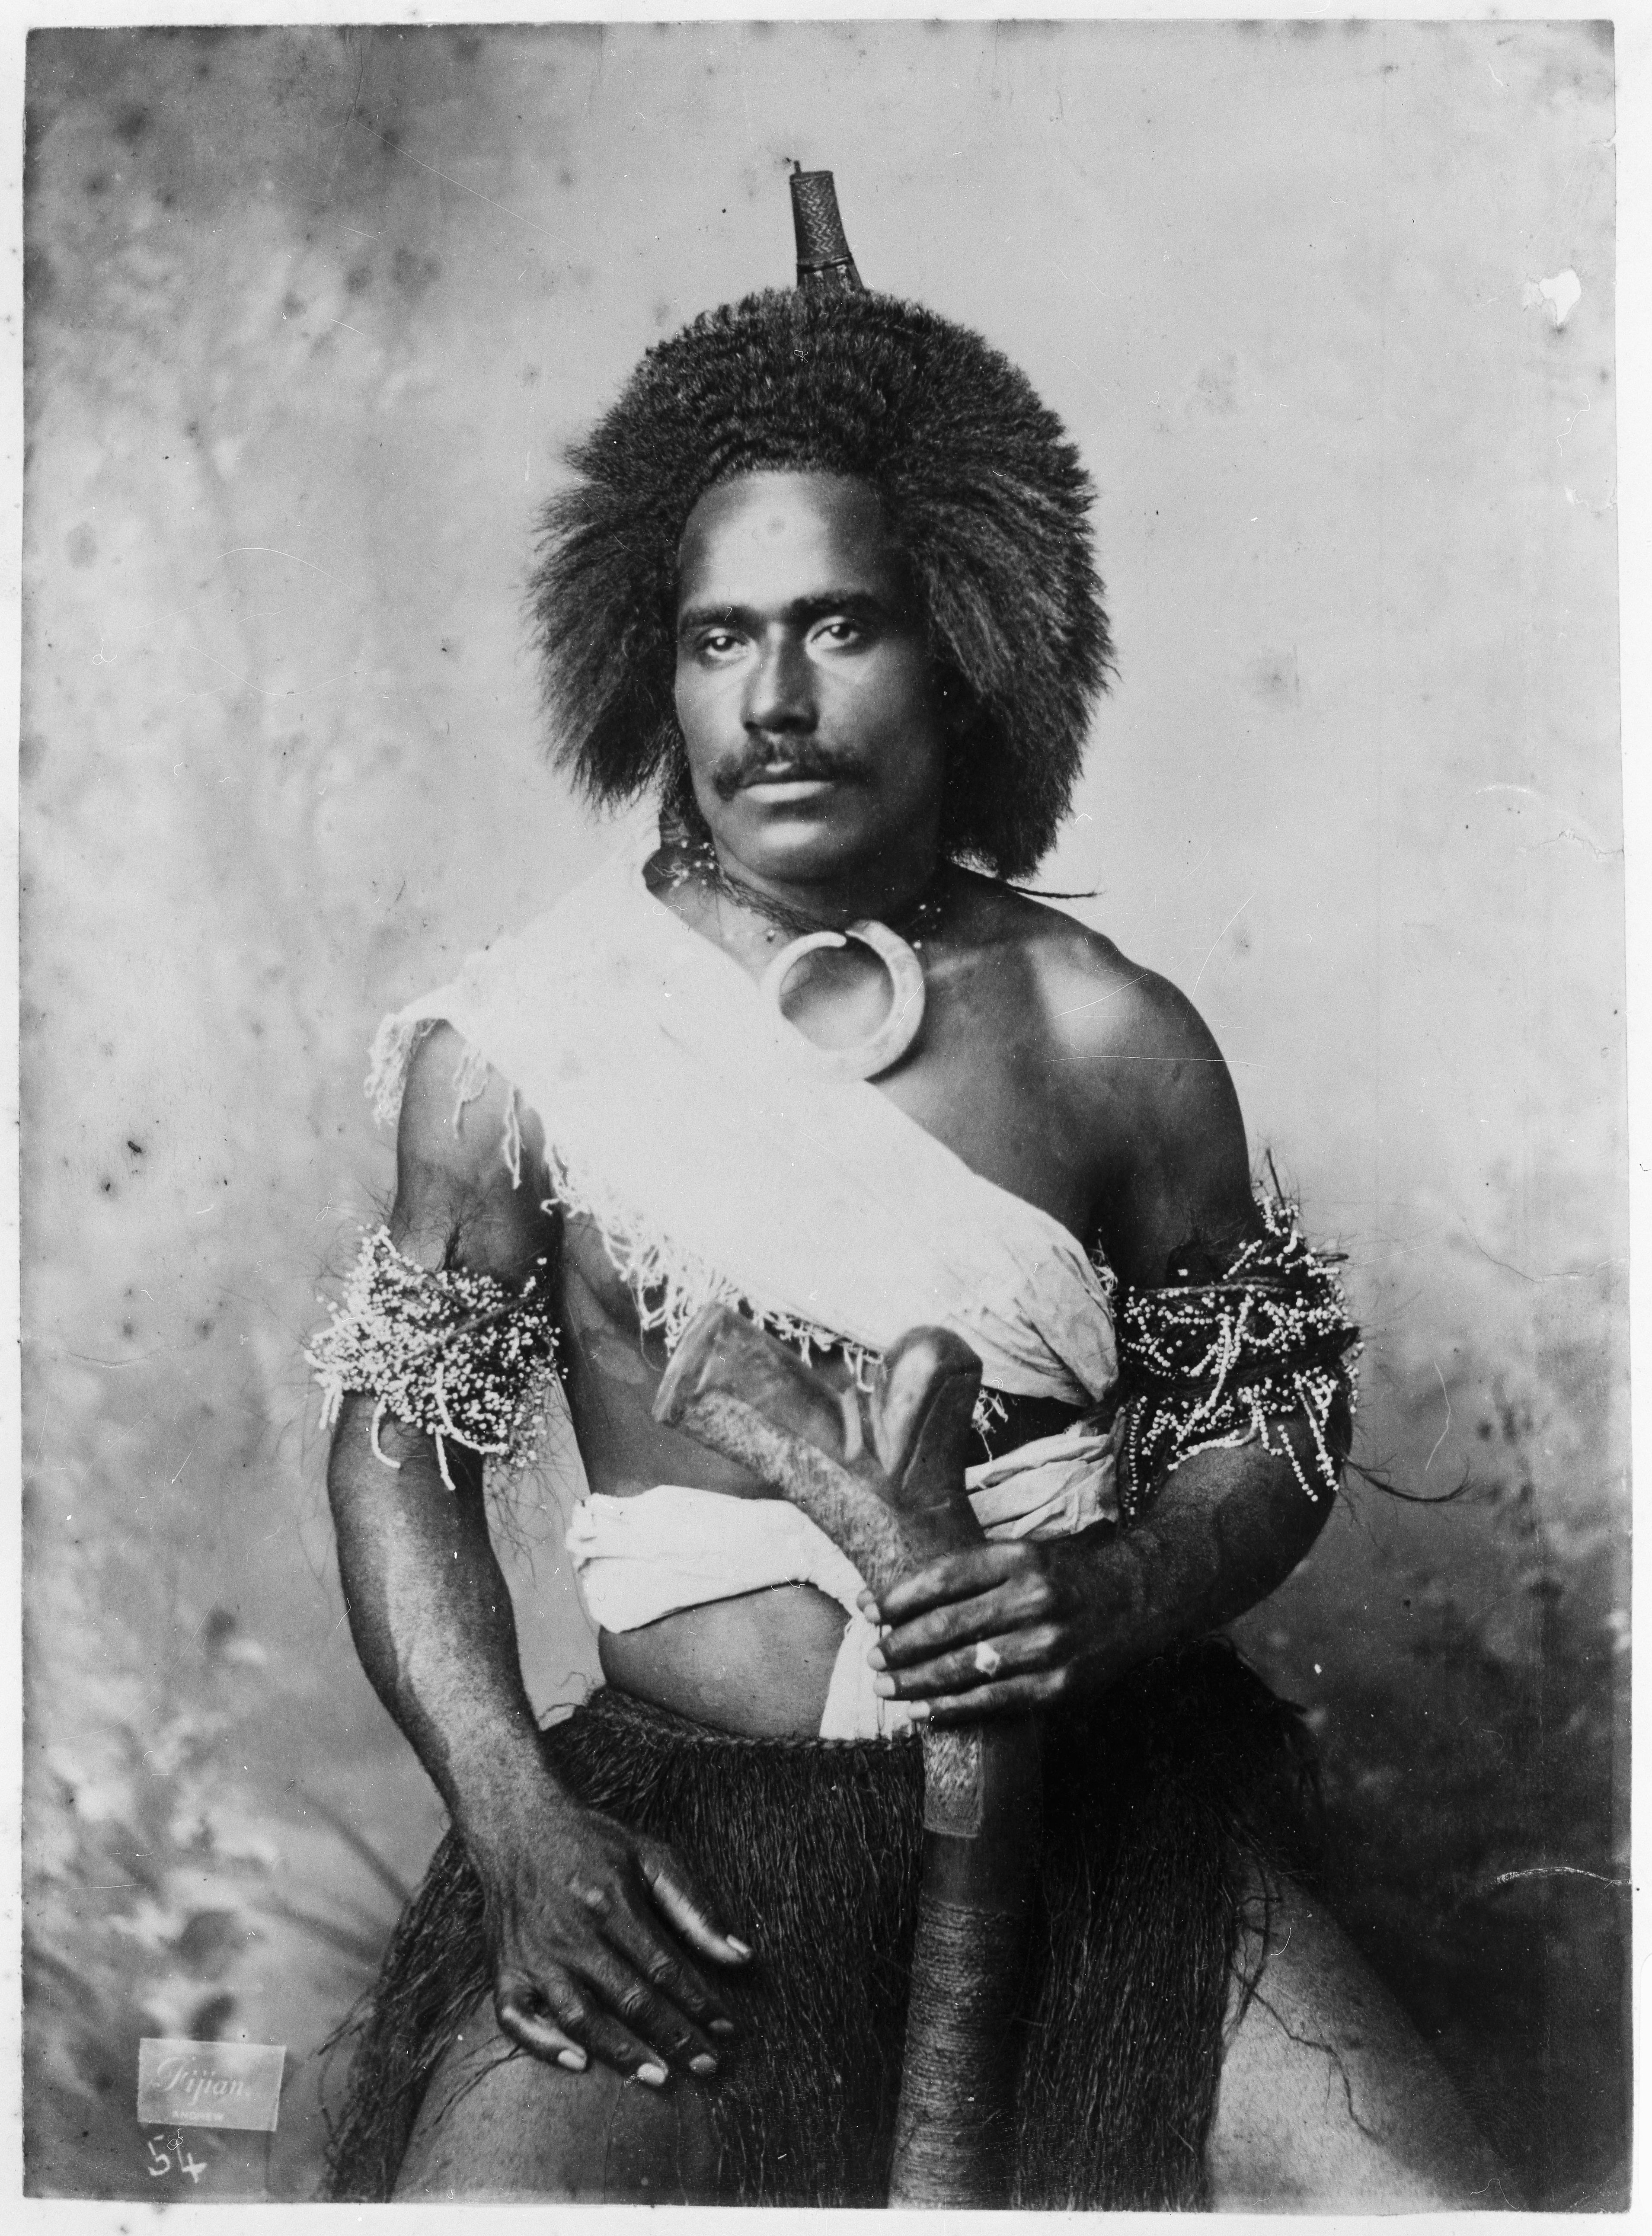 1890s Men Photos Description Unidentified Fijian Man